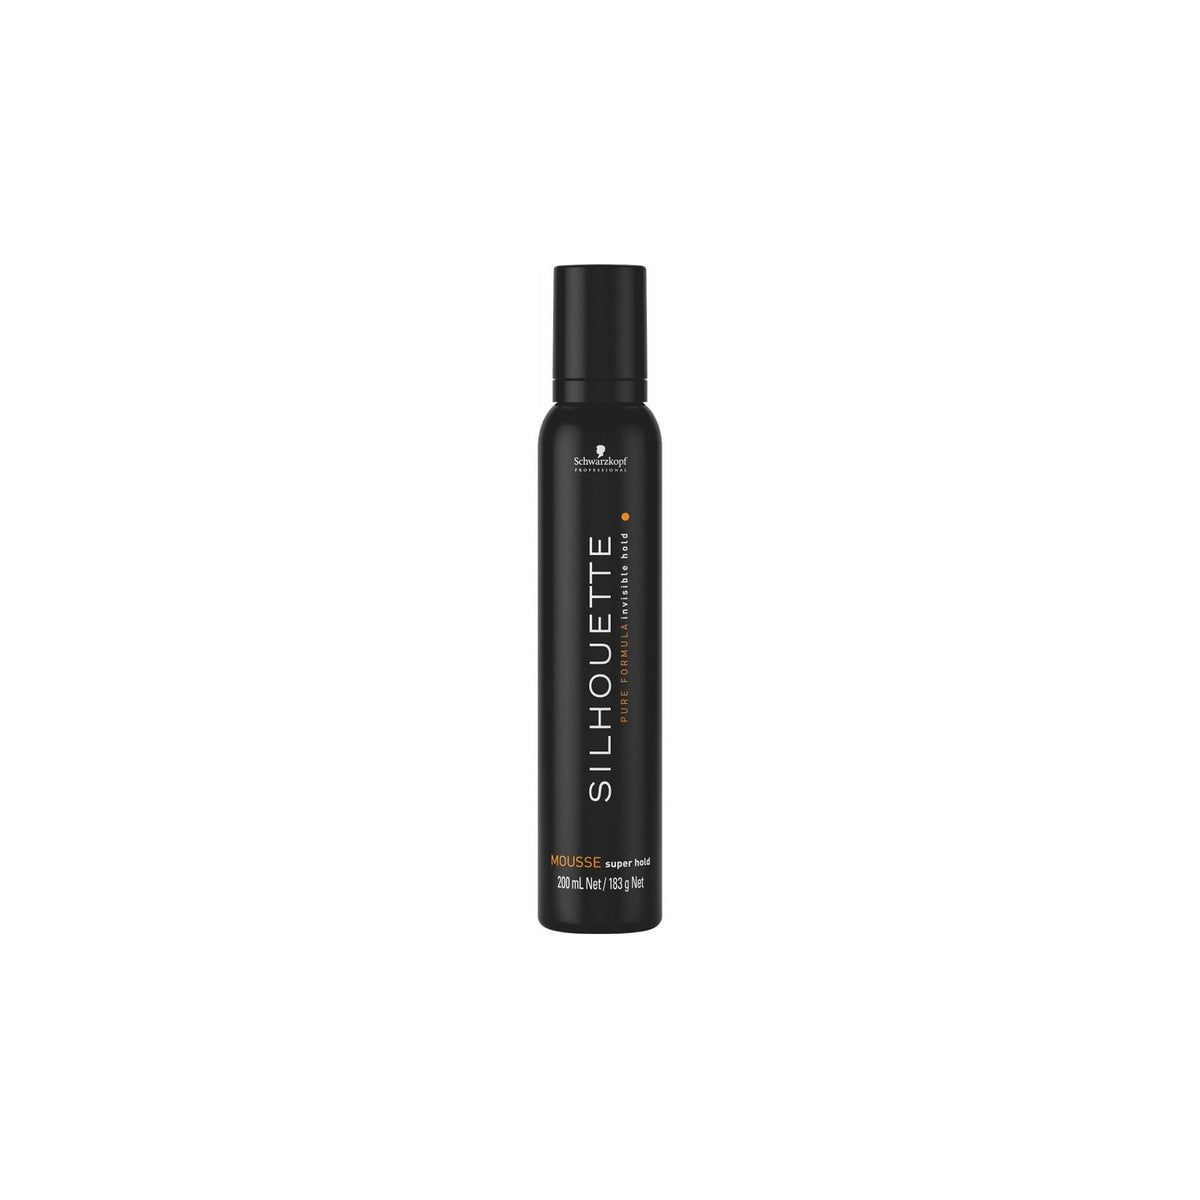 Silhouette Super Hold Mousse 200ml